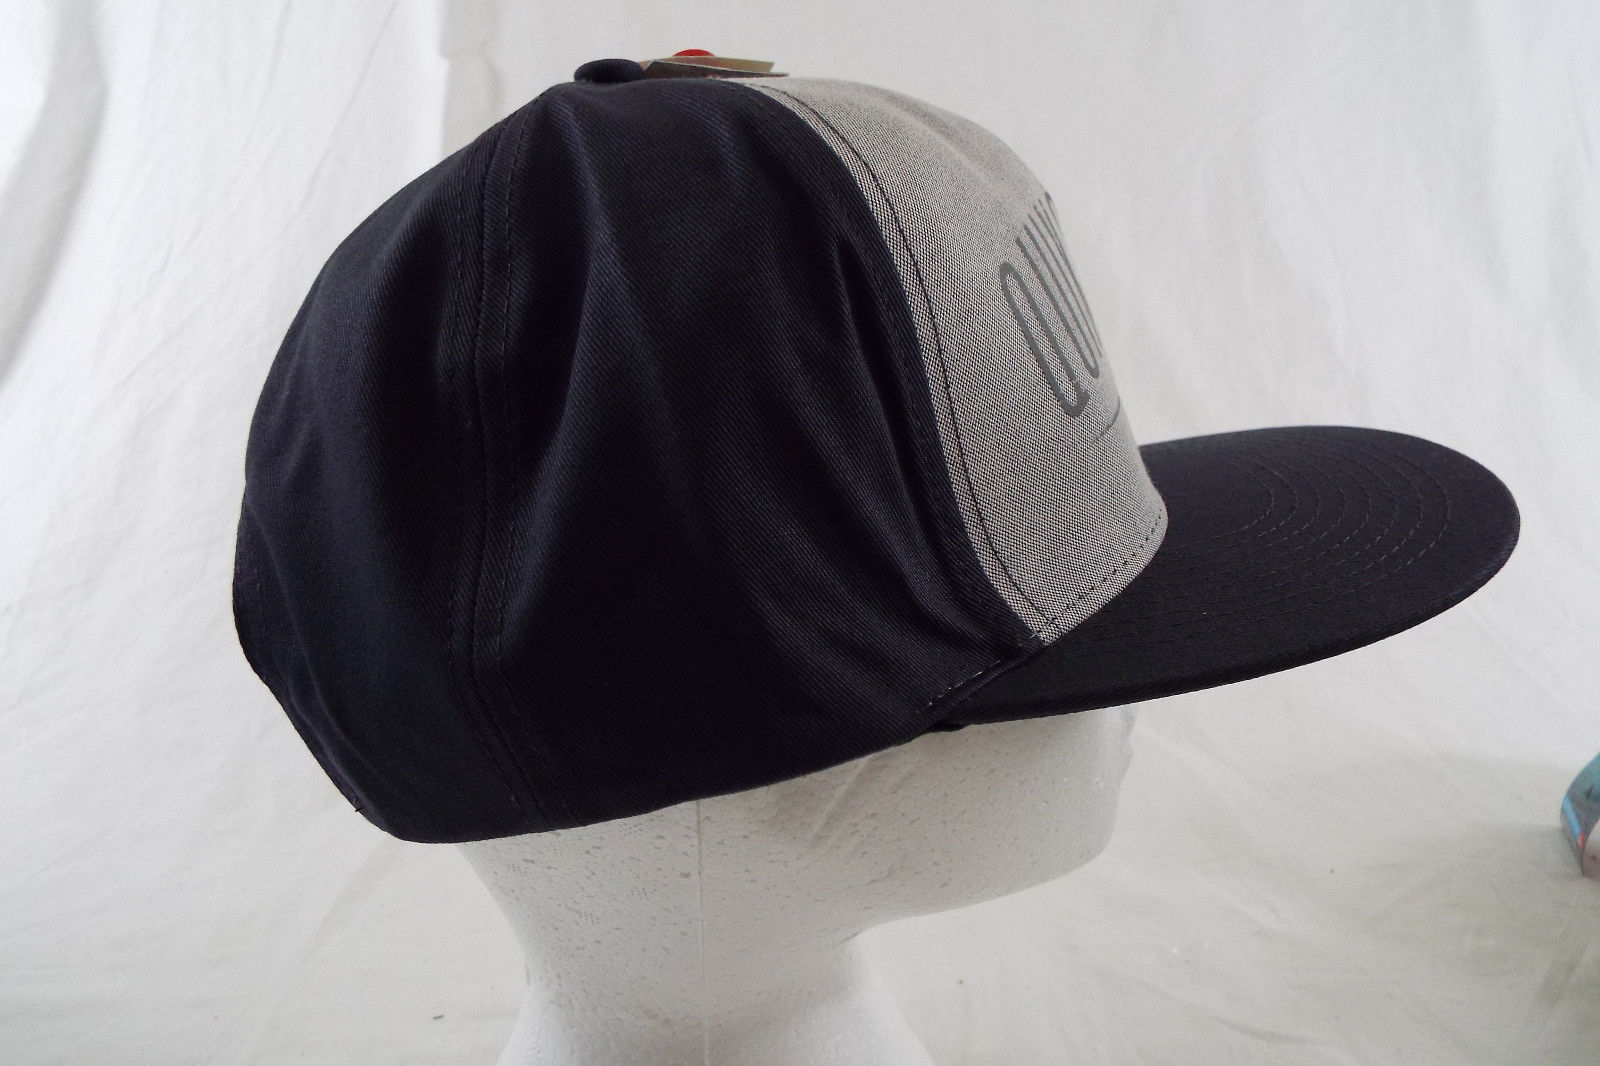 Quiksilver Hat SnapBack Black with Gray Panel NWT One Size